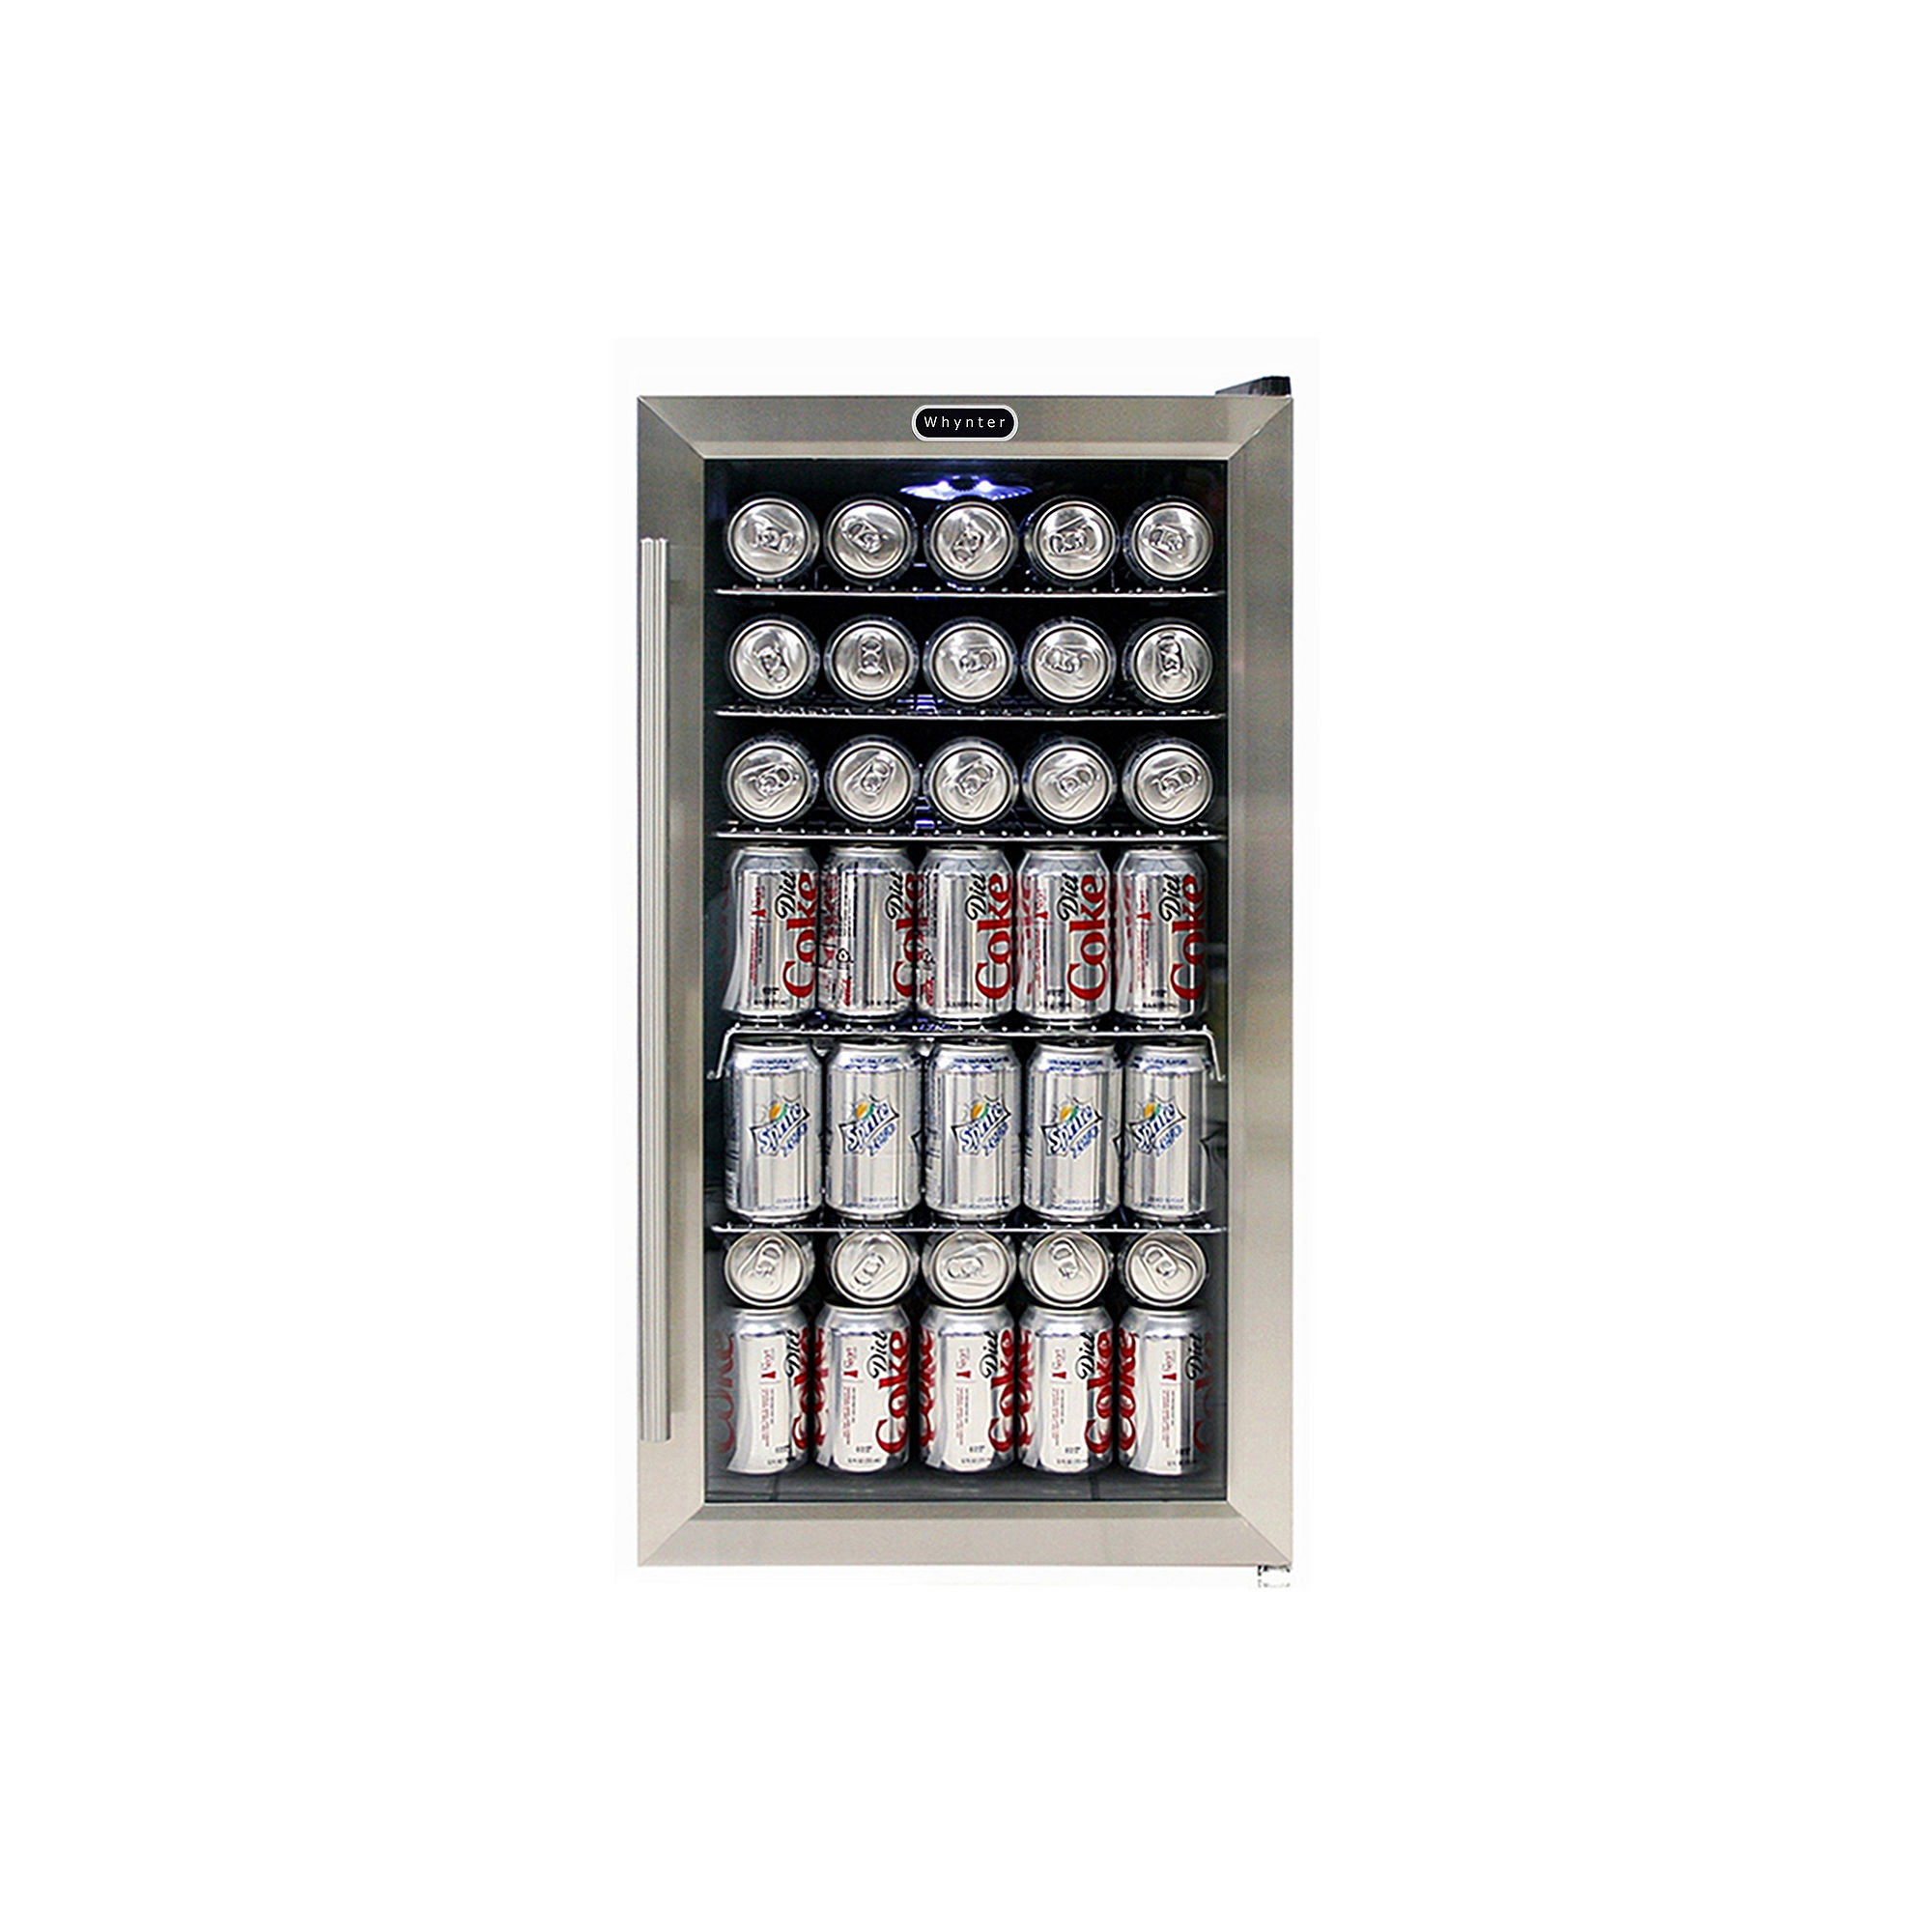 Whynter 120 Can Beverage Refridgerator with internal fan